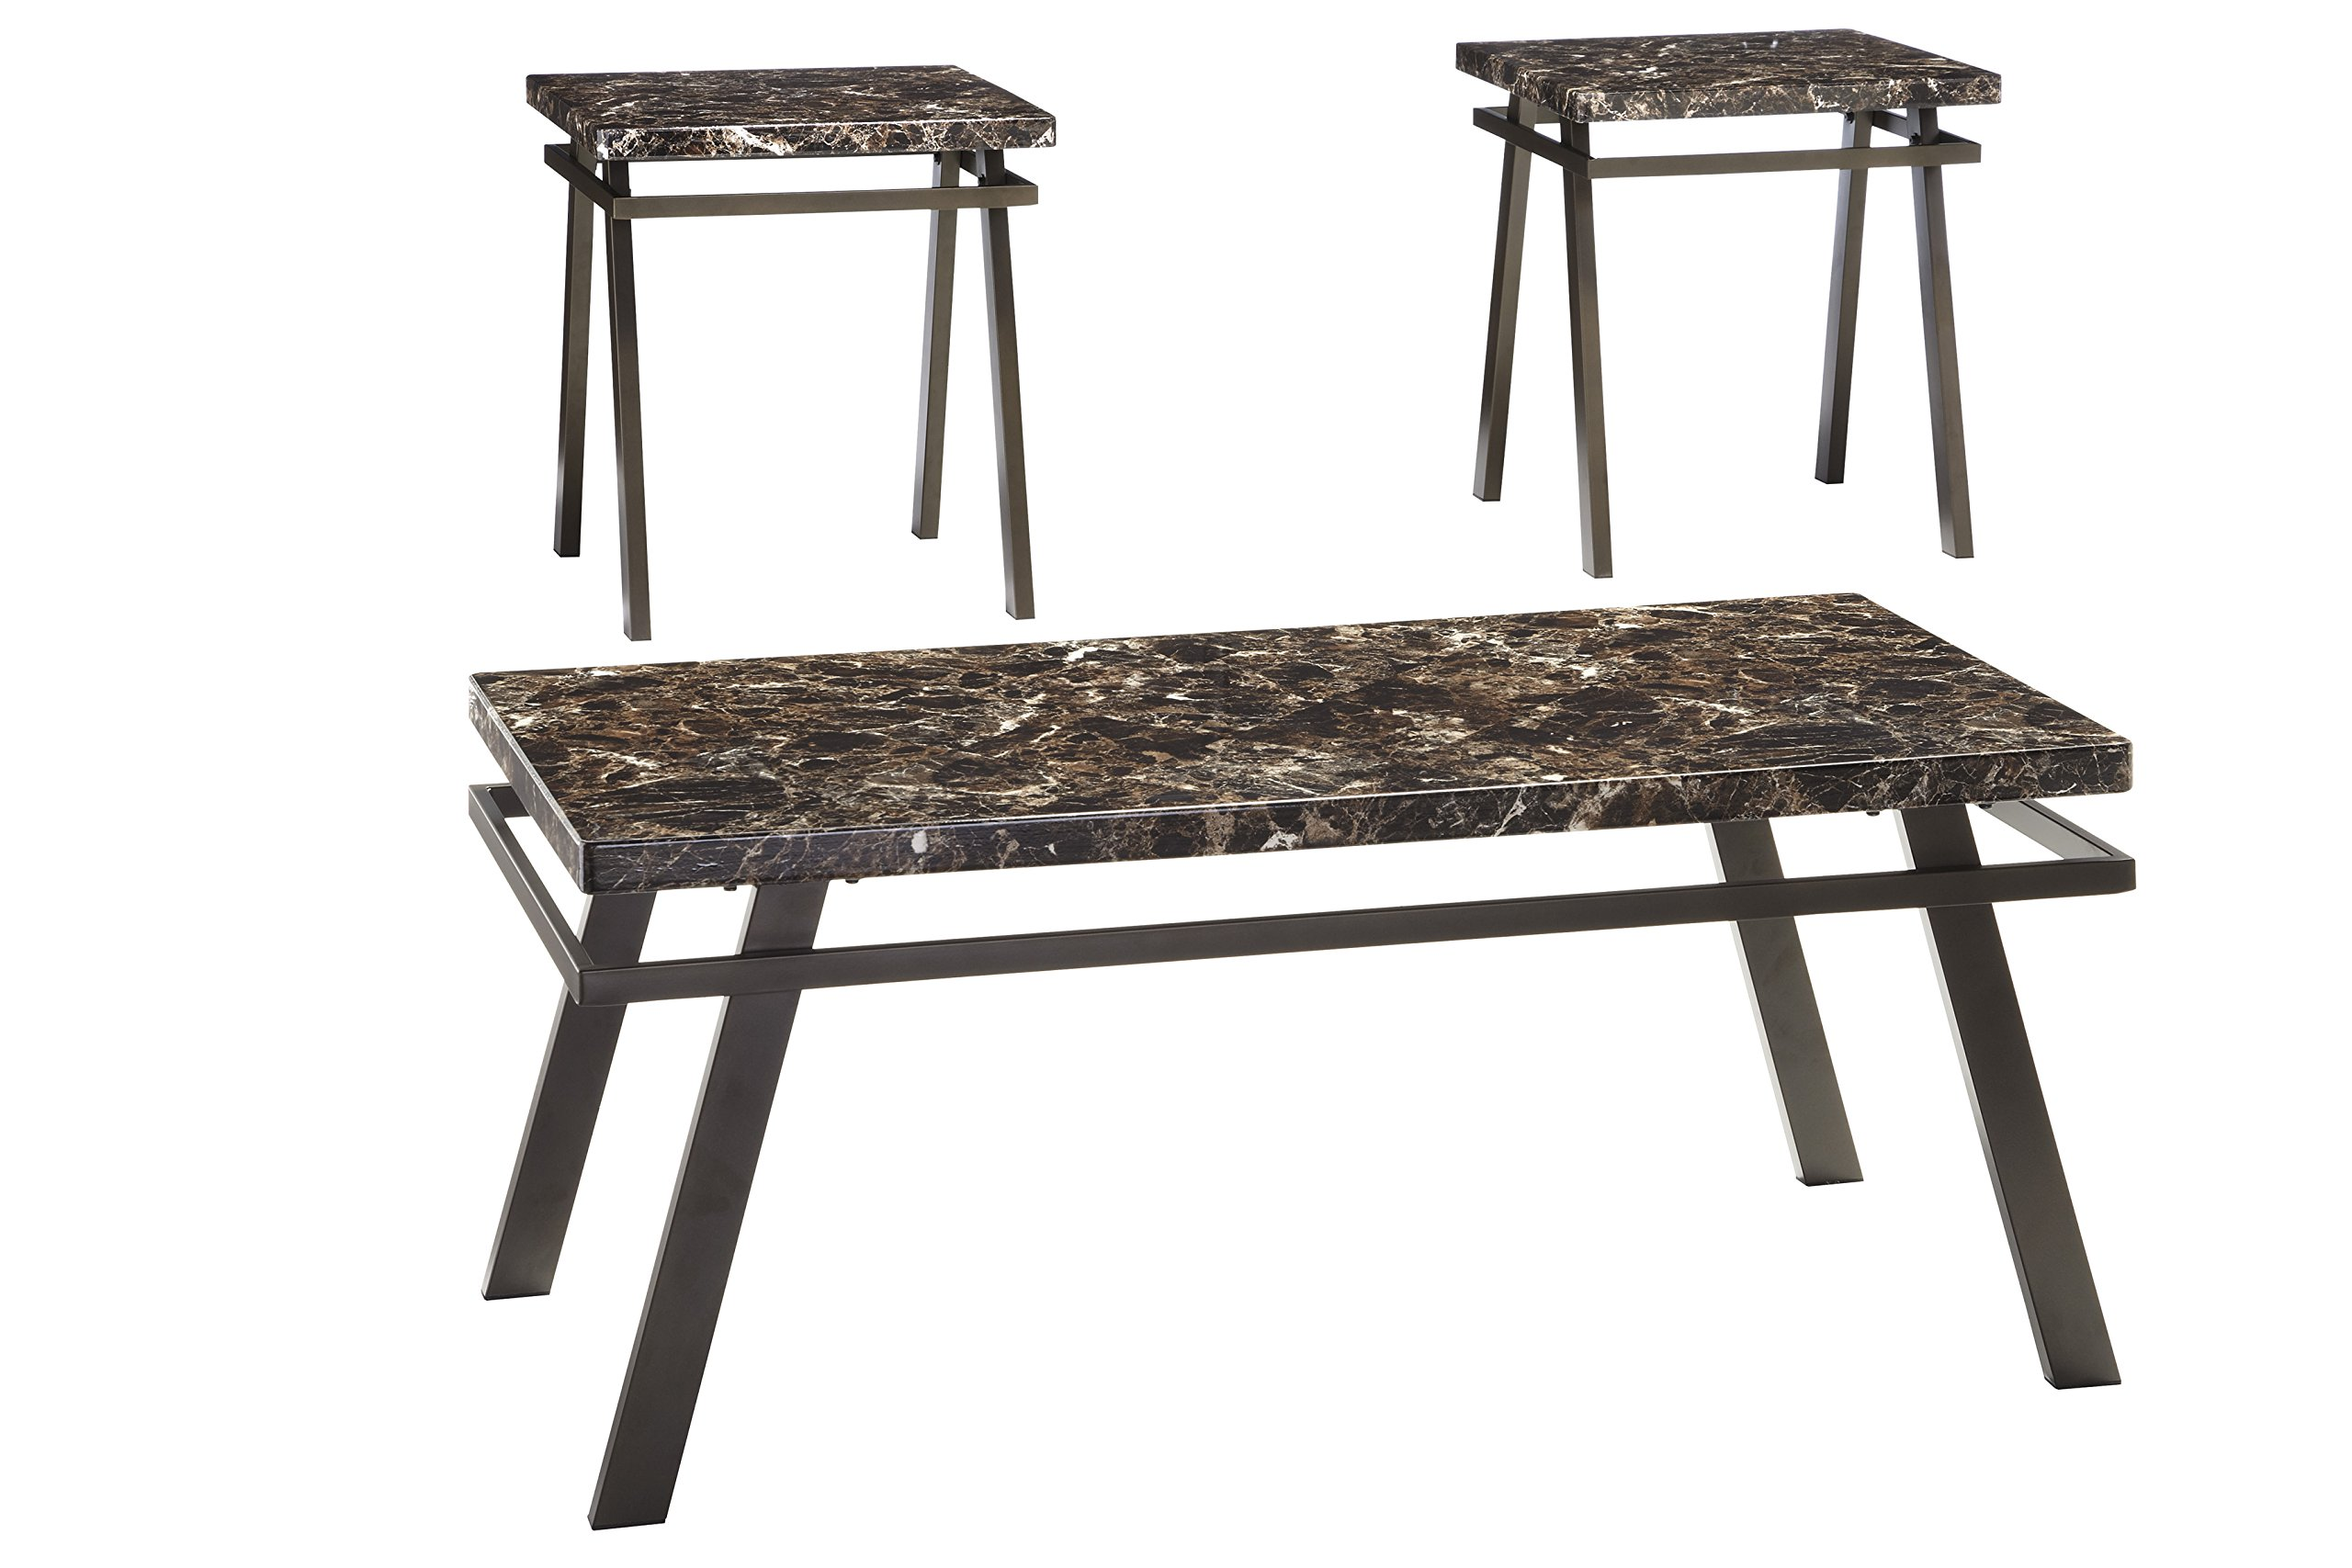 Ashley Furniture Signature Design - Paintsville Occasional Table Set - Contains Cocktail Table & 2 End Tables - Contemporary - Bronze Finish by Signature Design by Ashley